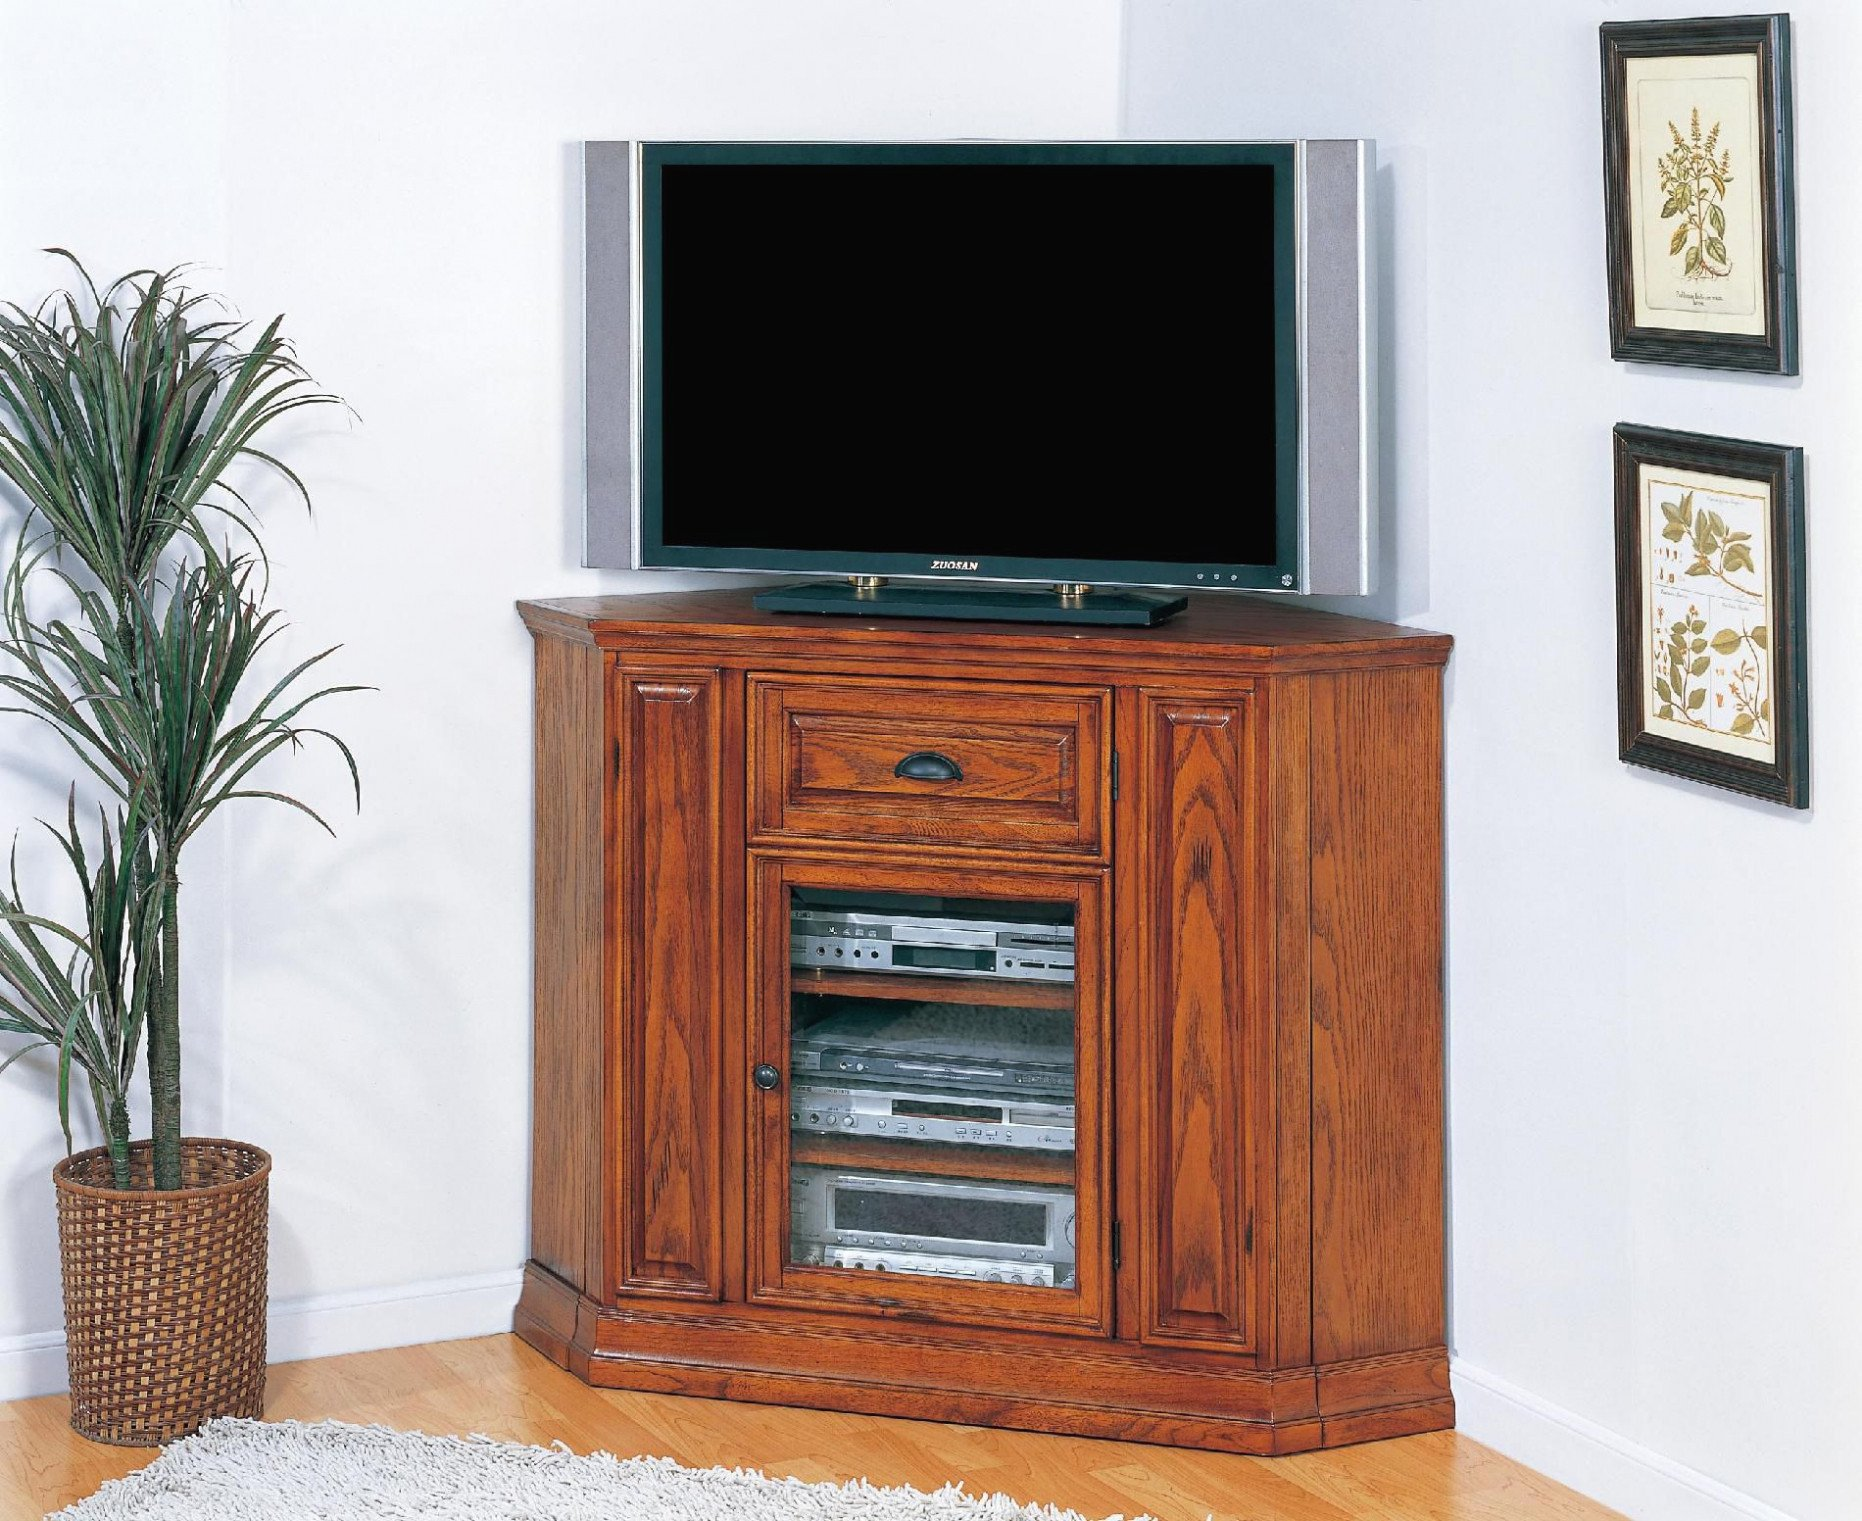 Tall Tv Stand for Bedroom Lovely Living Room Better Tall Tv Stands for Bedroom Beautiful